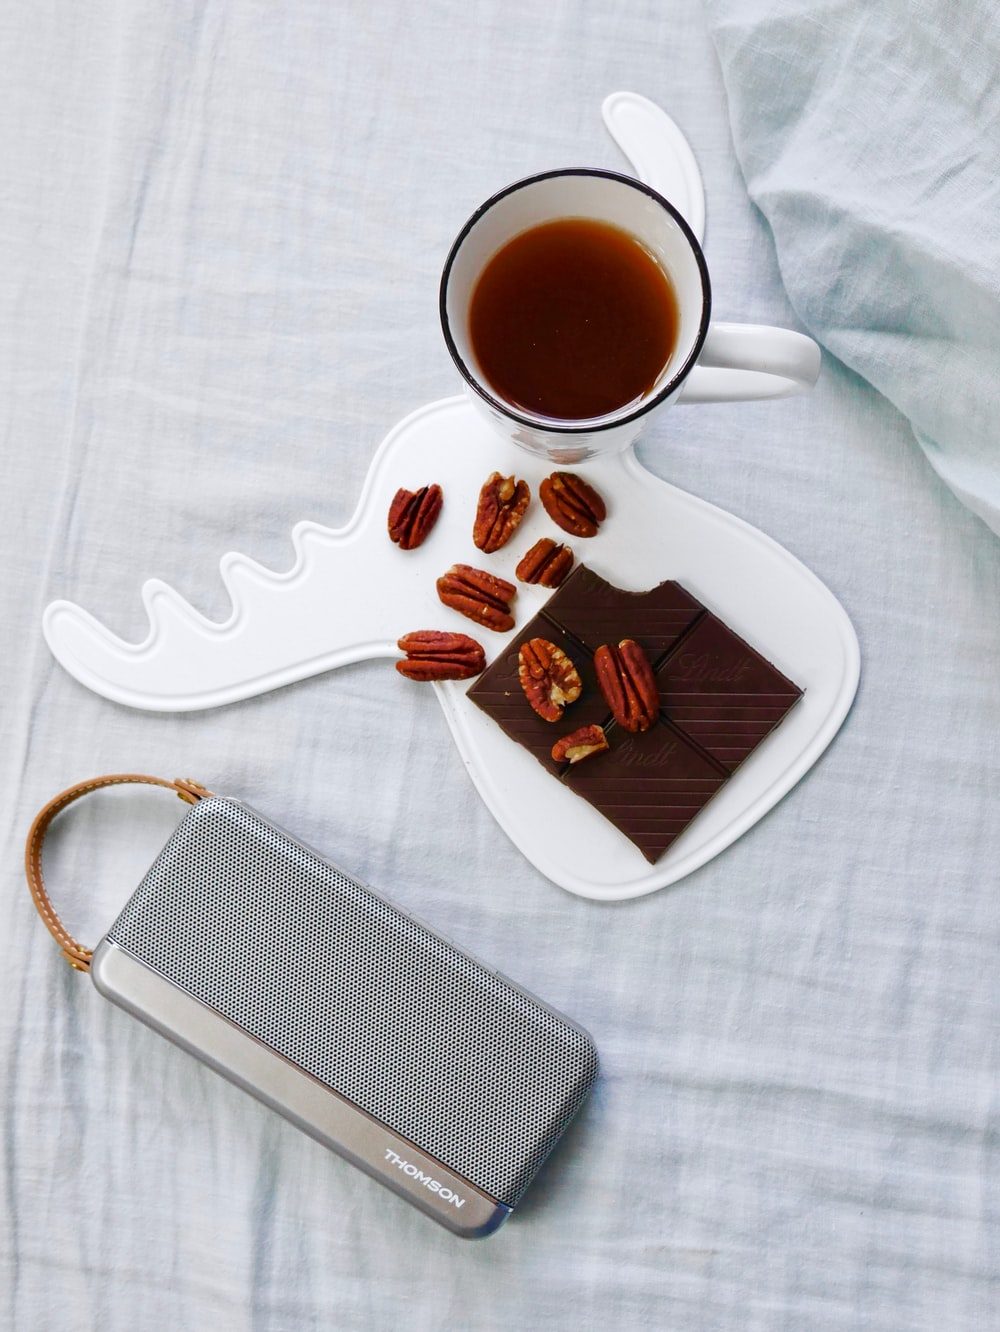 walnuts on white tray beside cup of coffee